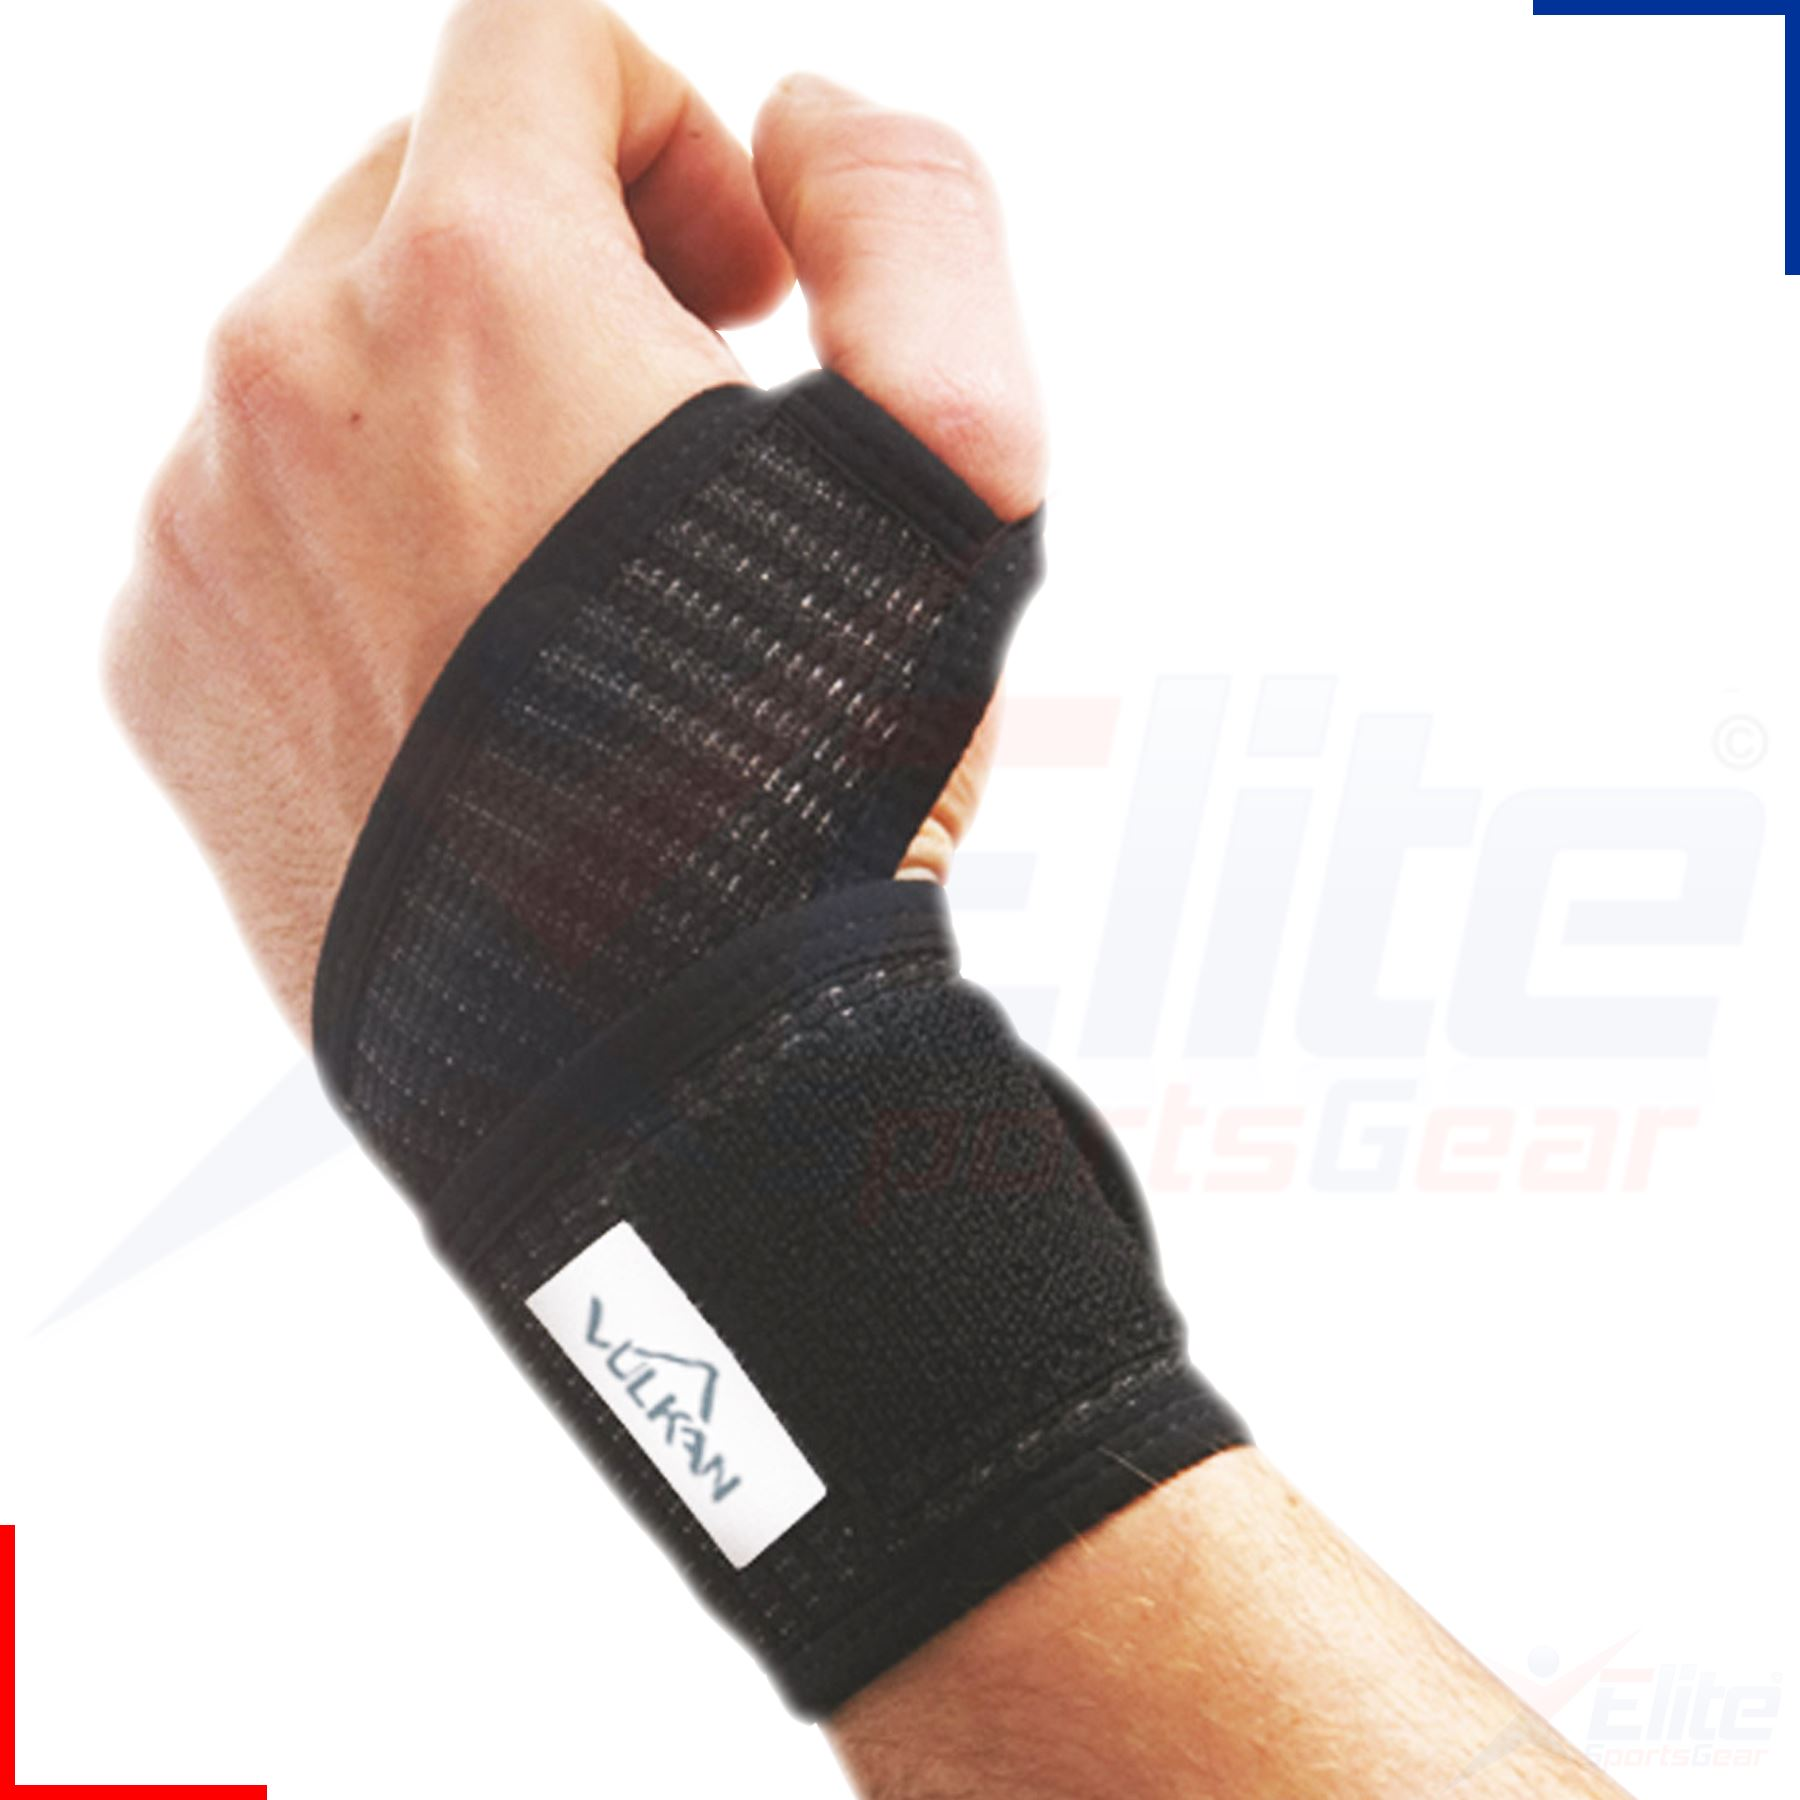 Vulkan-AE-Wrist-Elbow-Knee-Ankle-Supports-Arthritis-Strain-Relief-NHS